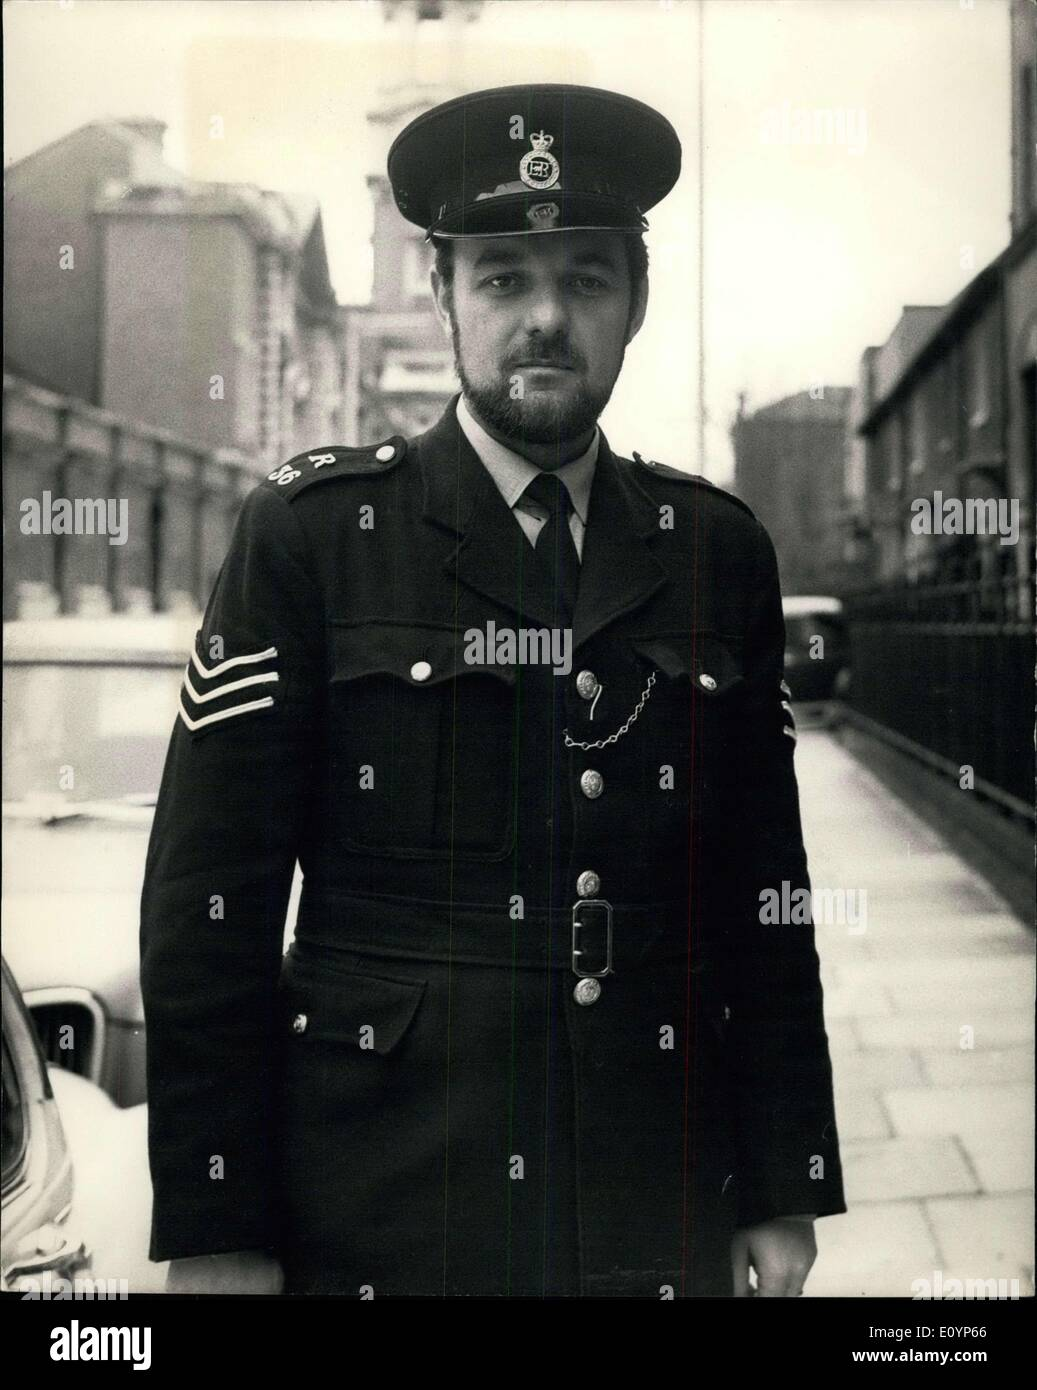 Jan. 18, 1971 - Police Sergeant is also a reversed: Sergeant Barry Wright of Woolwich Police Station has earned - Stock Image